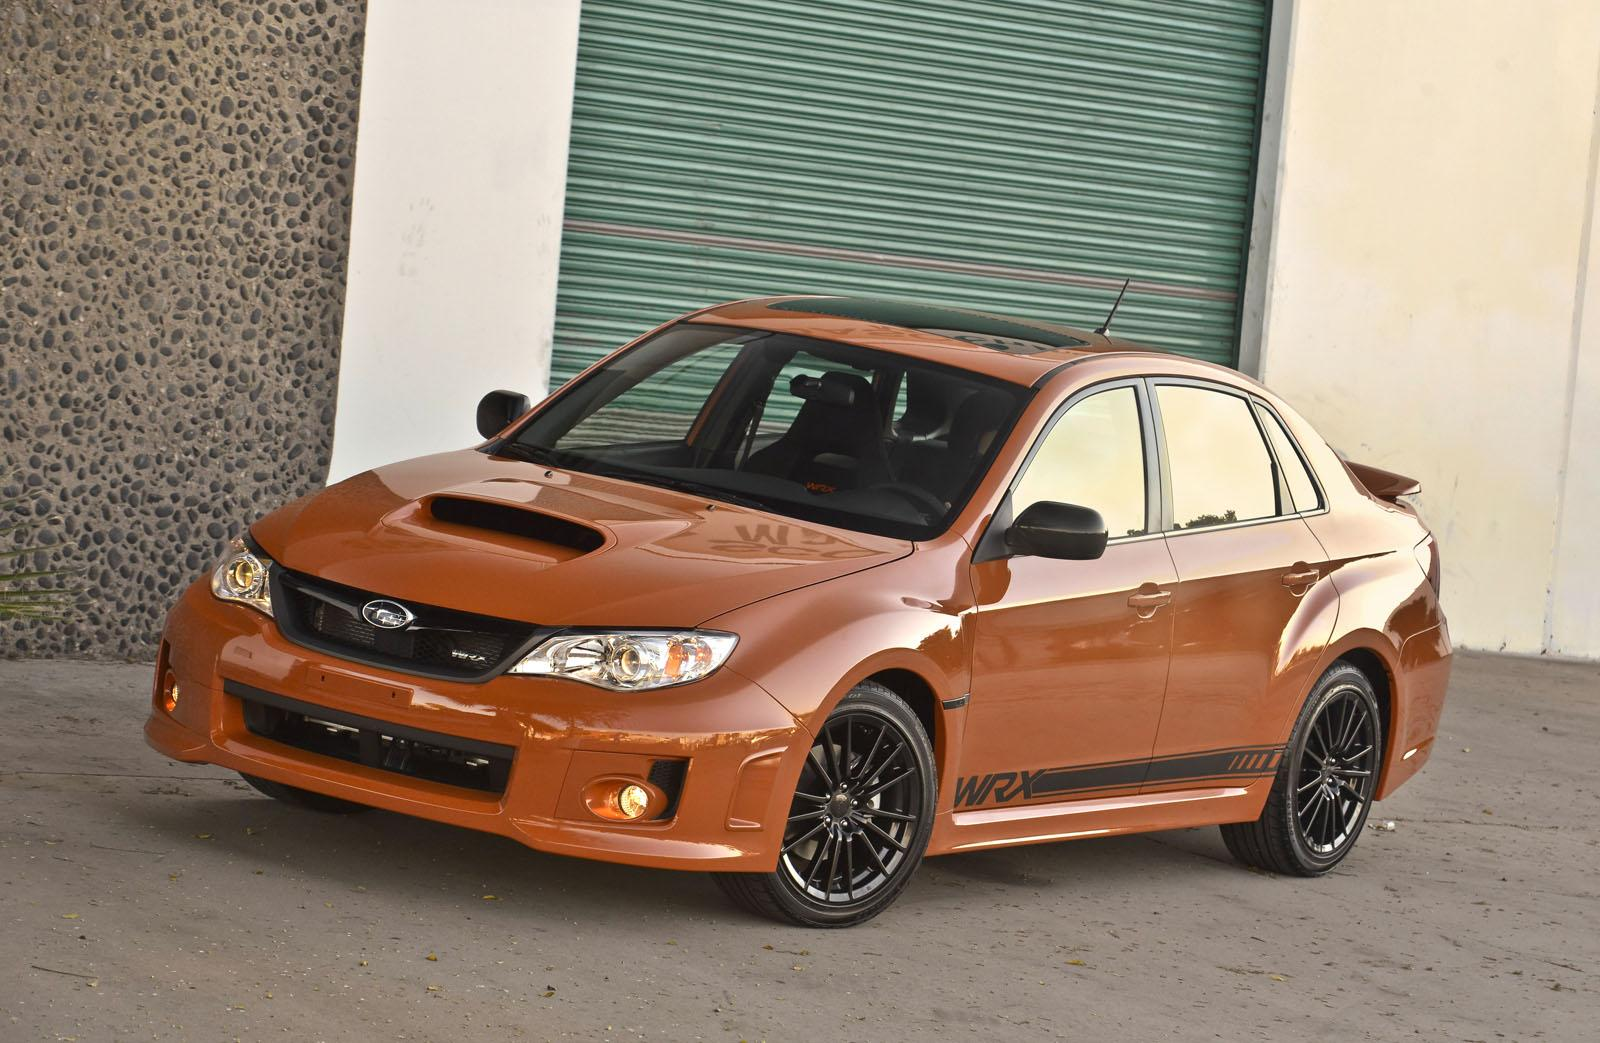 2013 subaru wrx and wrx sti special editions unveiled. Black Bedroom Furniture Sets. Home Design Ideas